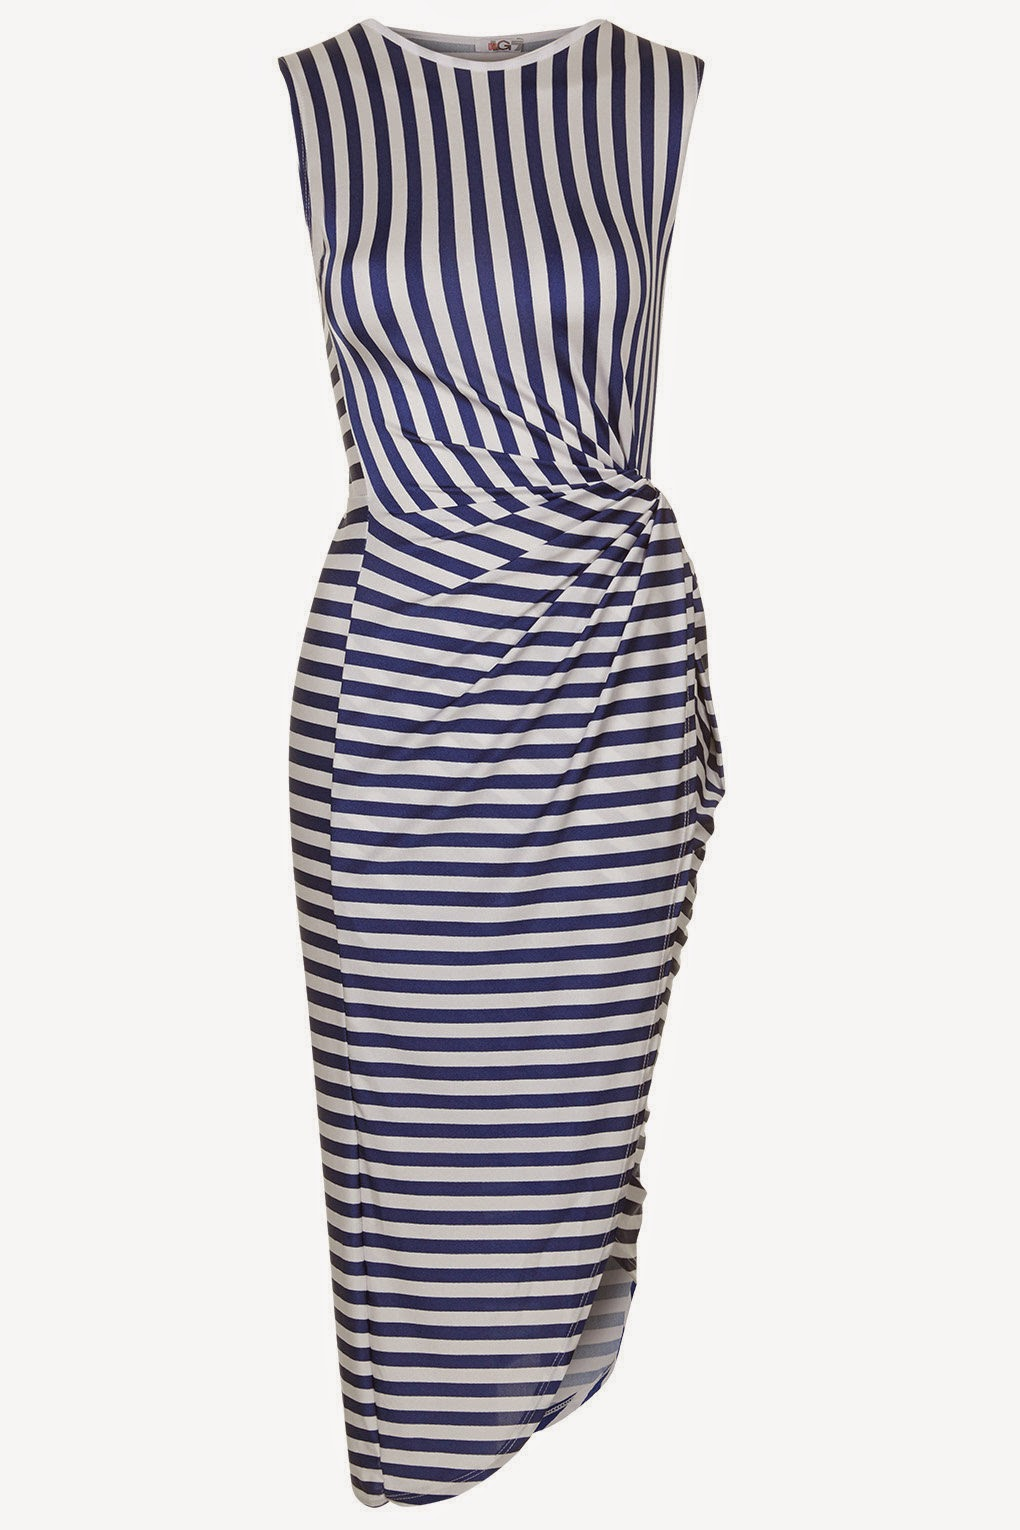 blue white striped dress